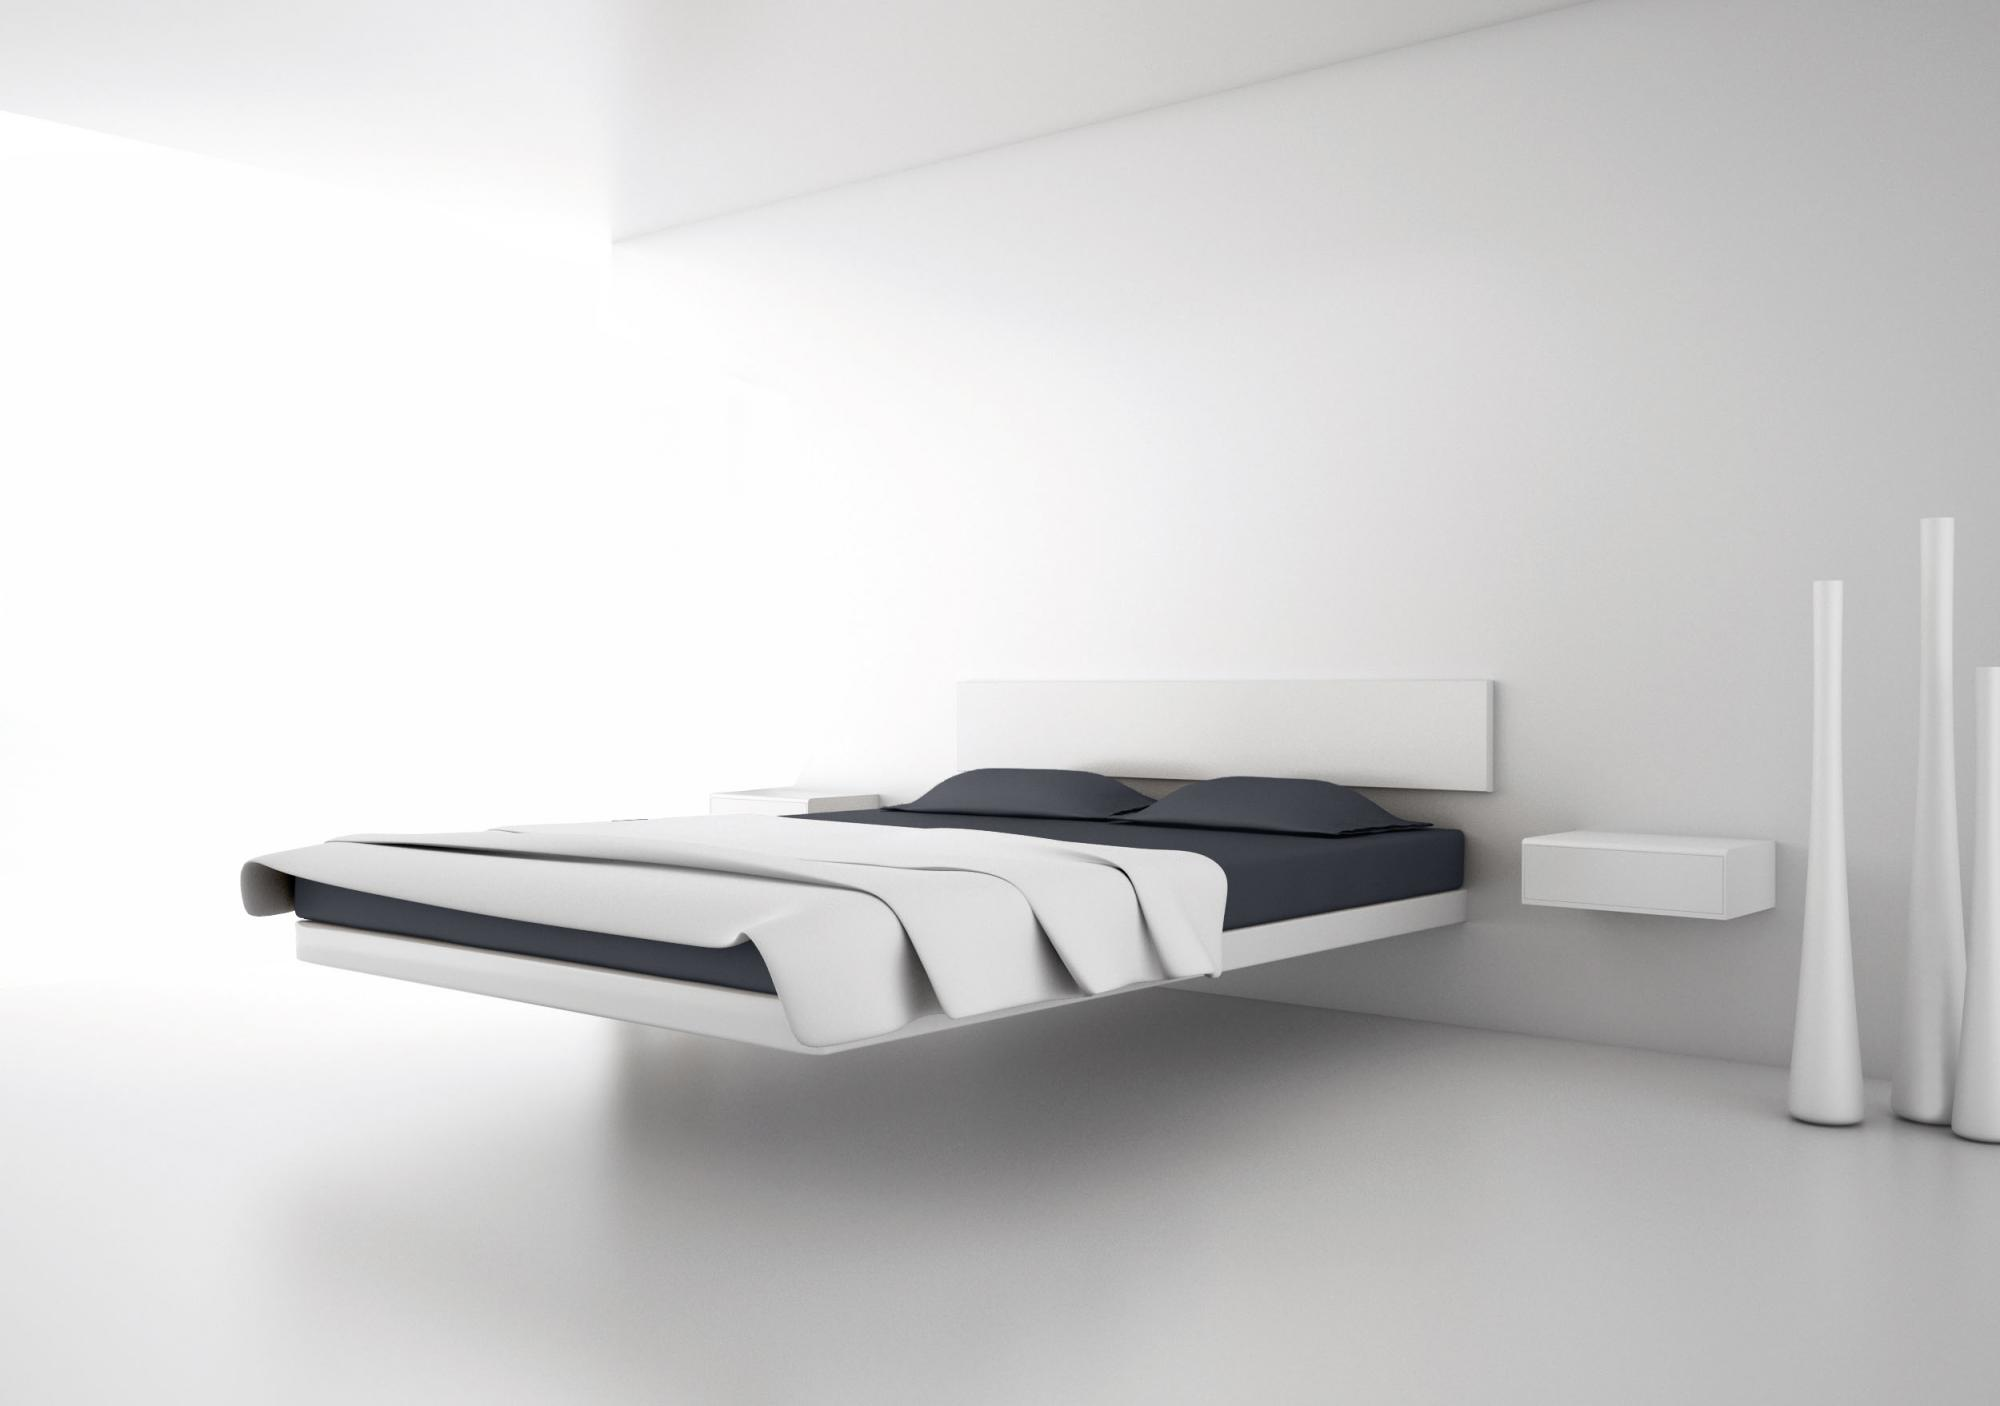 Cool Futuristic Furniture Furniture Tomo Design